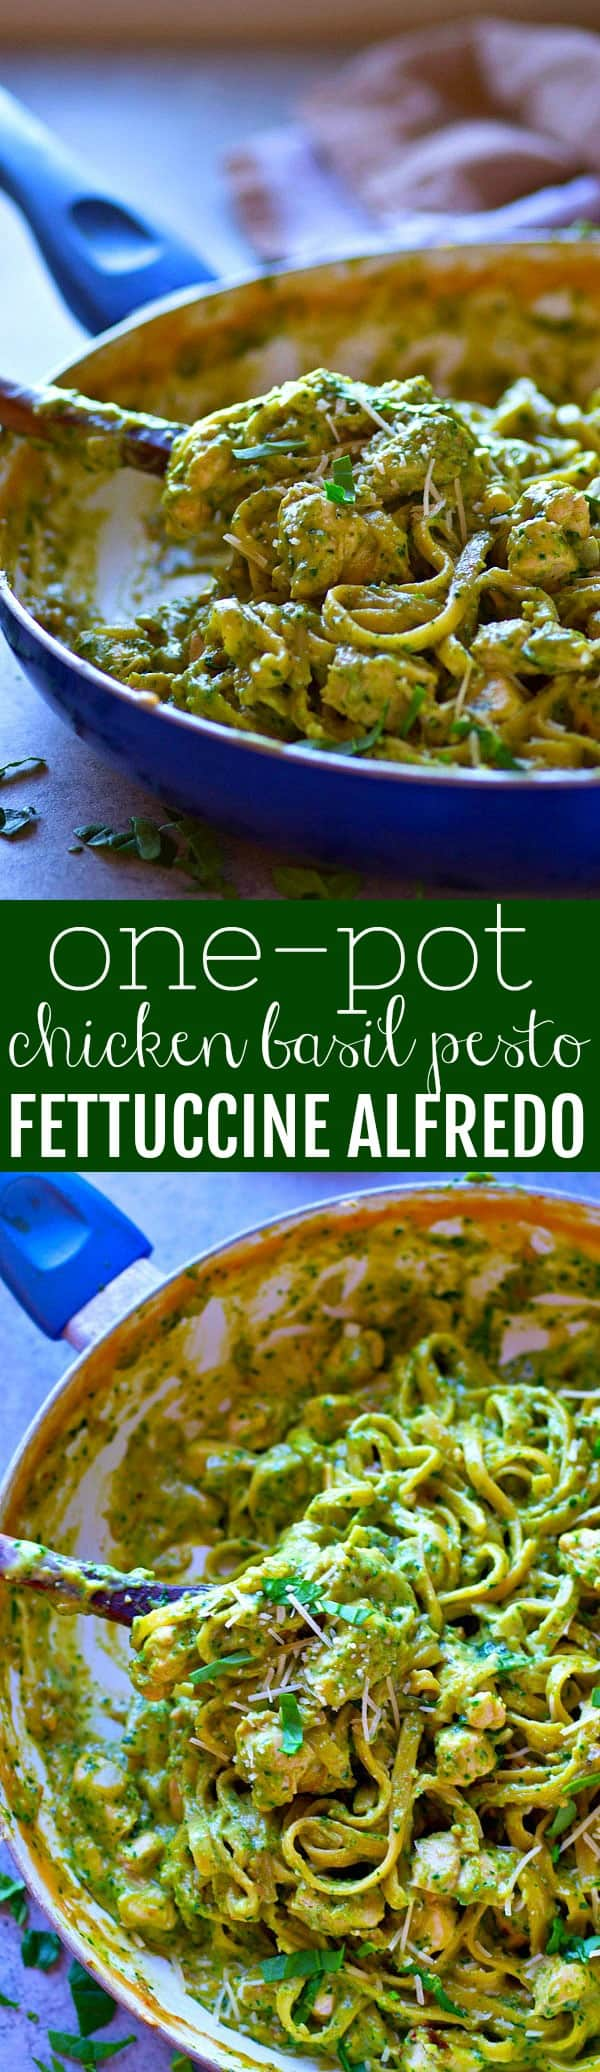 Creamy, flavorful chicken basil pesto fettuccine alfredo is made ENTIRELY in one pot in only 30 minutes and this one will quickly become your new favorite way to eat fettuccine alfredo!